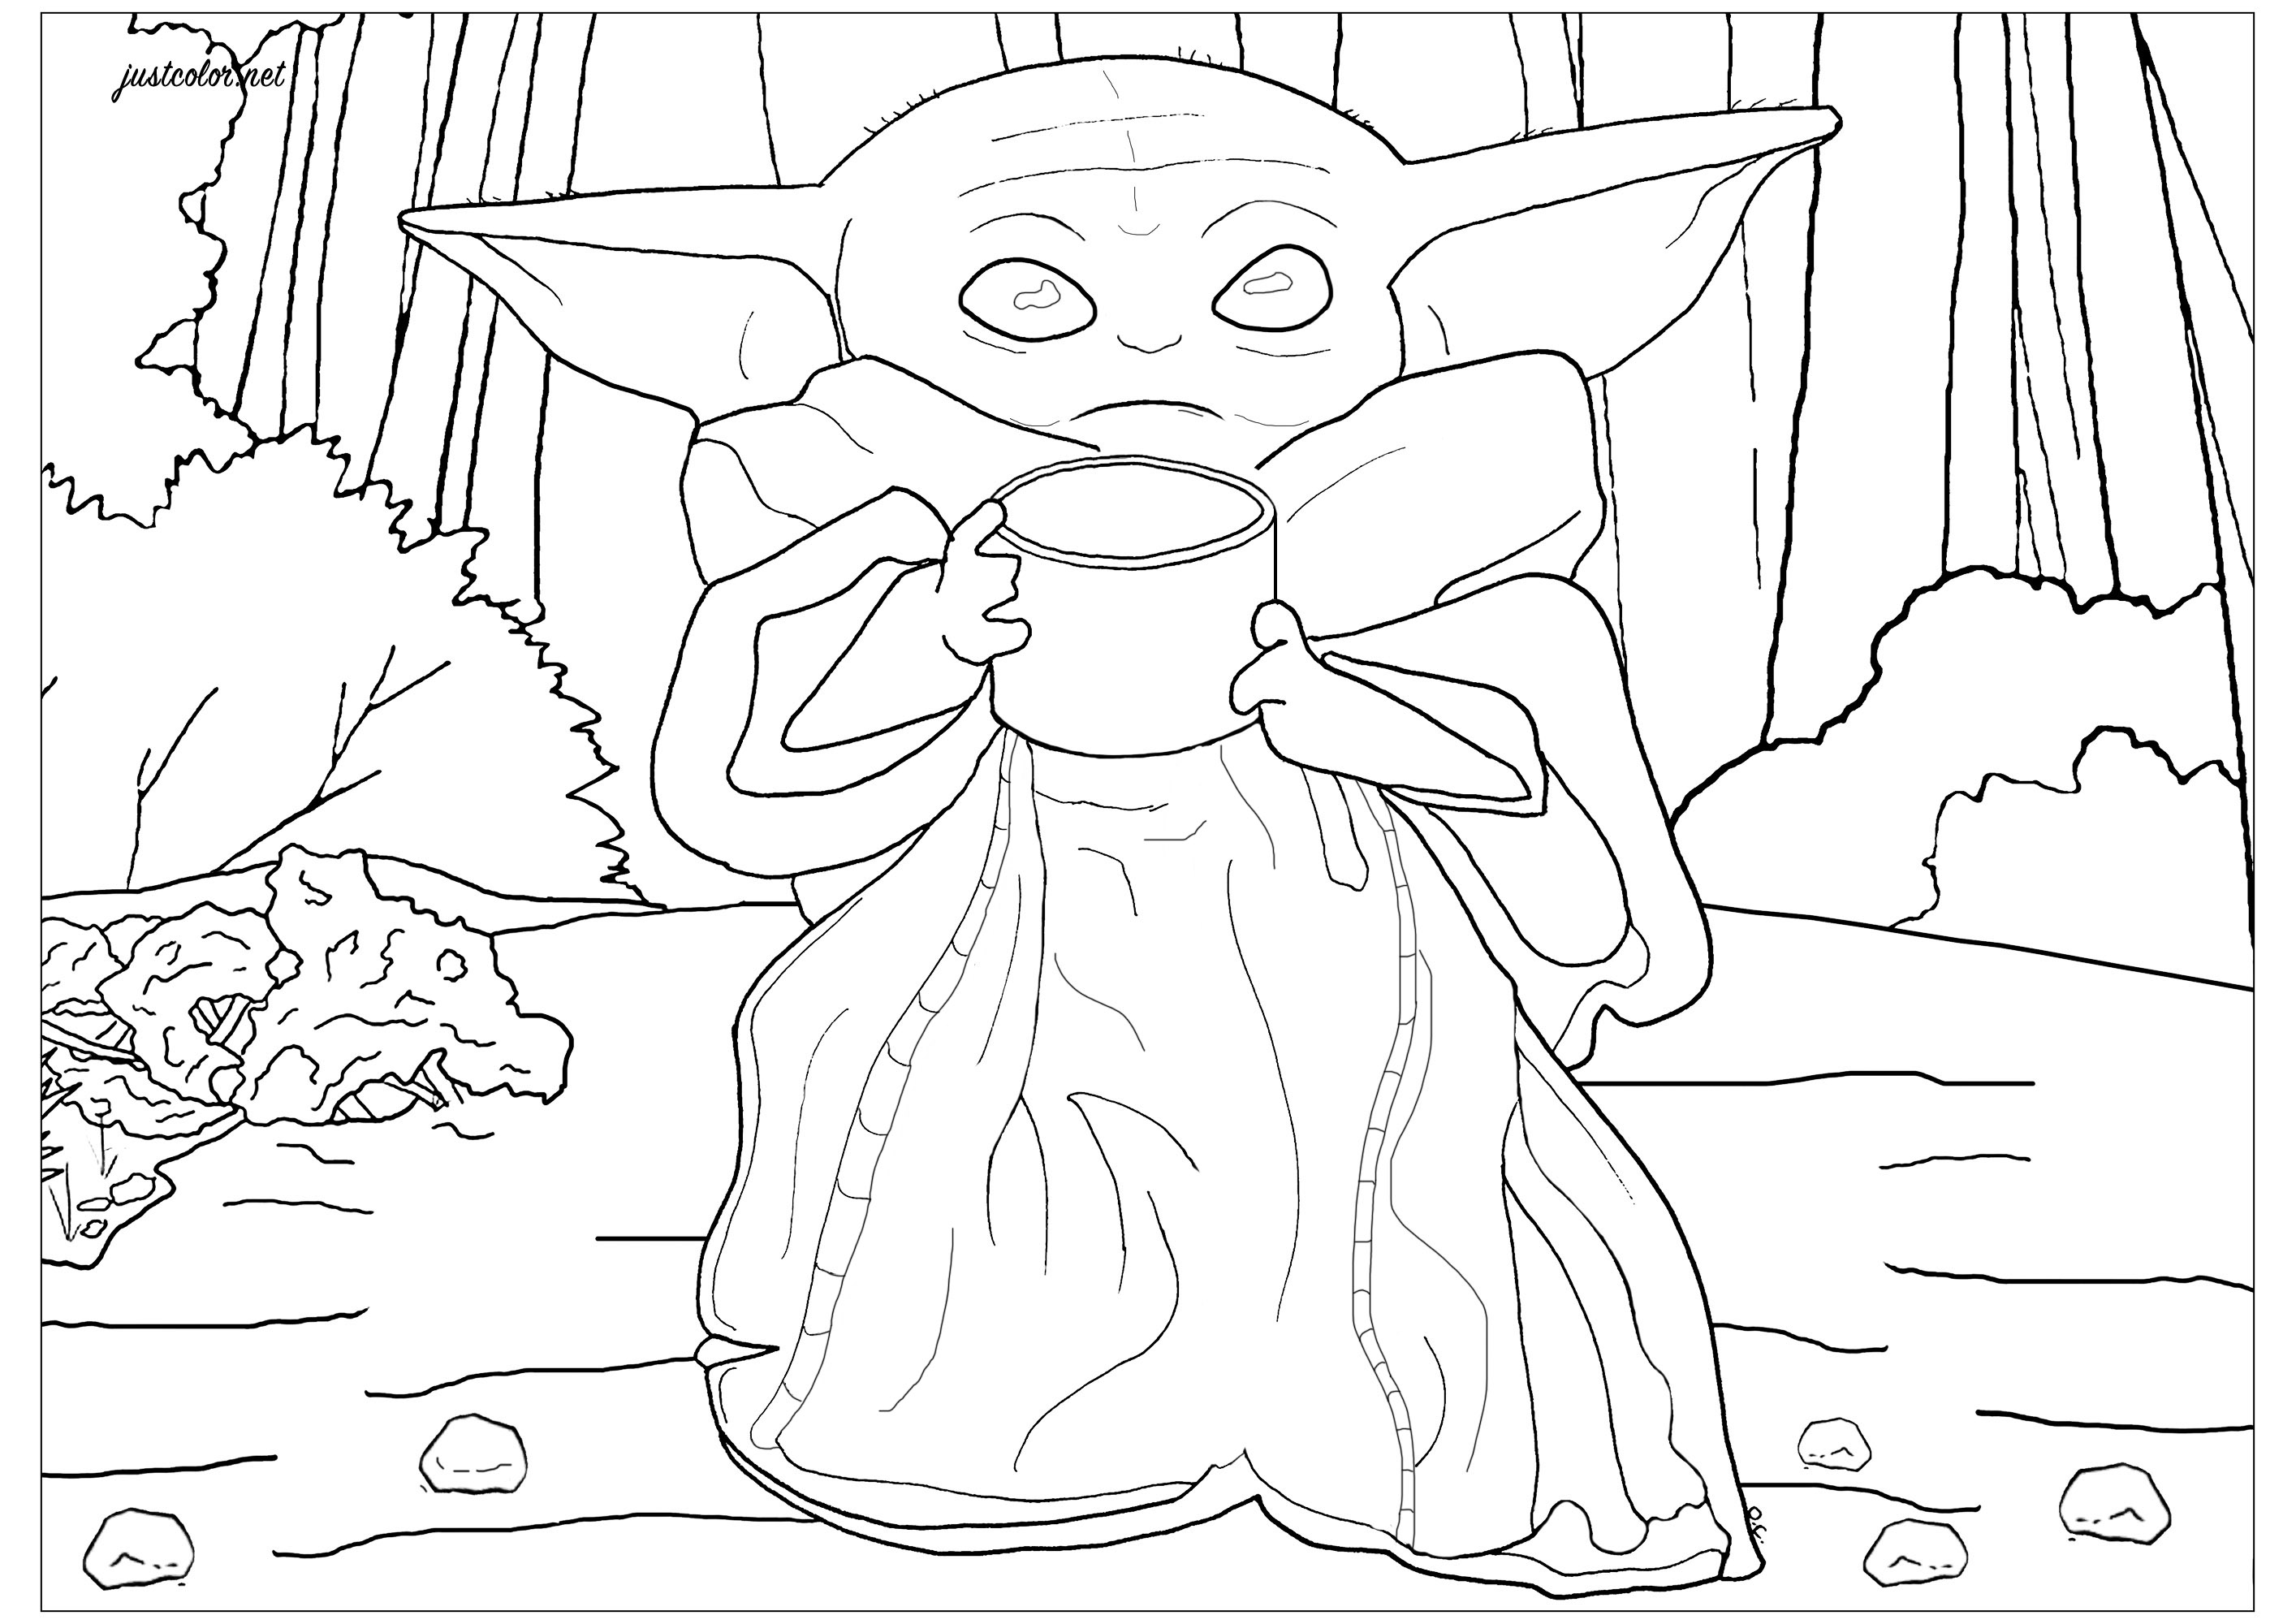 Coloring page of Baby Yoda (The Child), from television series The Mandalorian (Star Wars / Disney +). This character is a member of the same alien species as Yoda, but he is younger (50 years old).